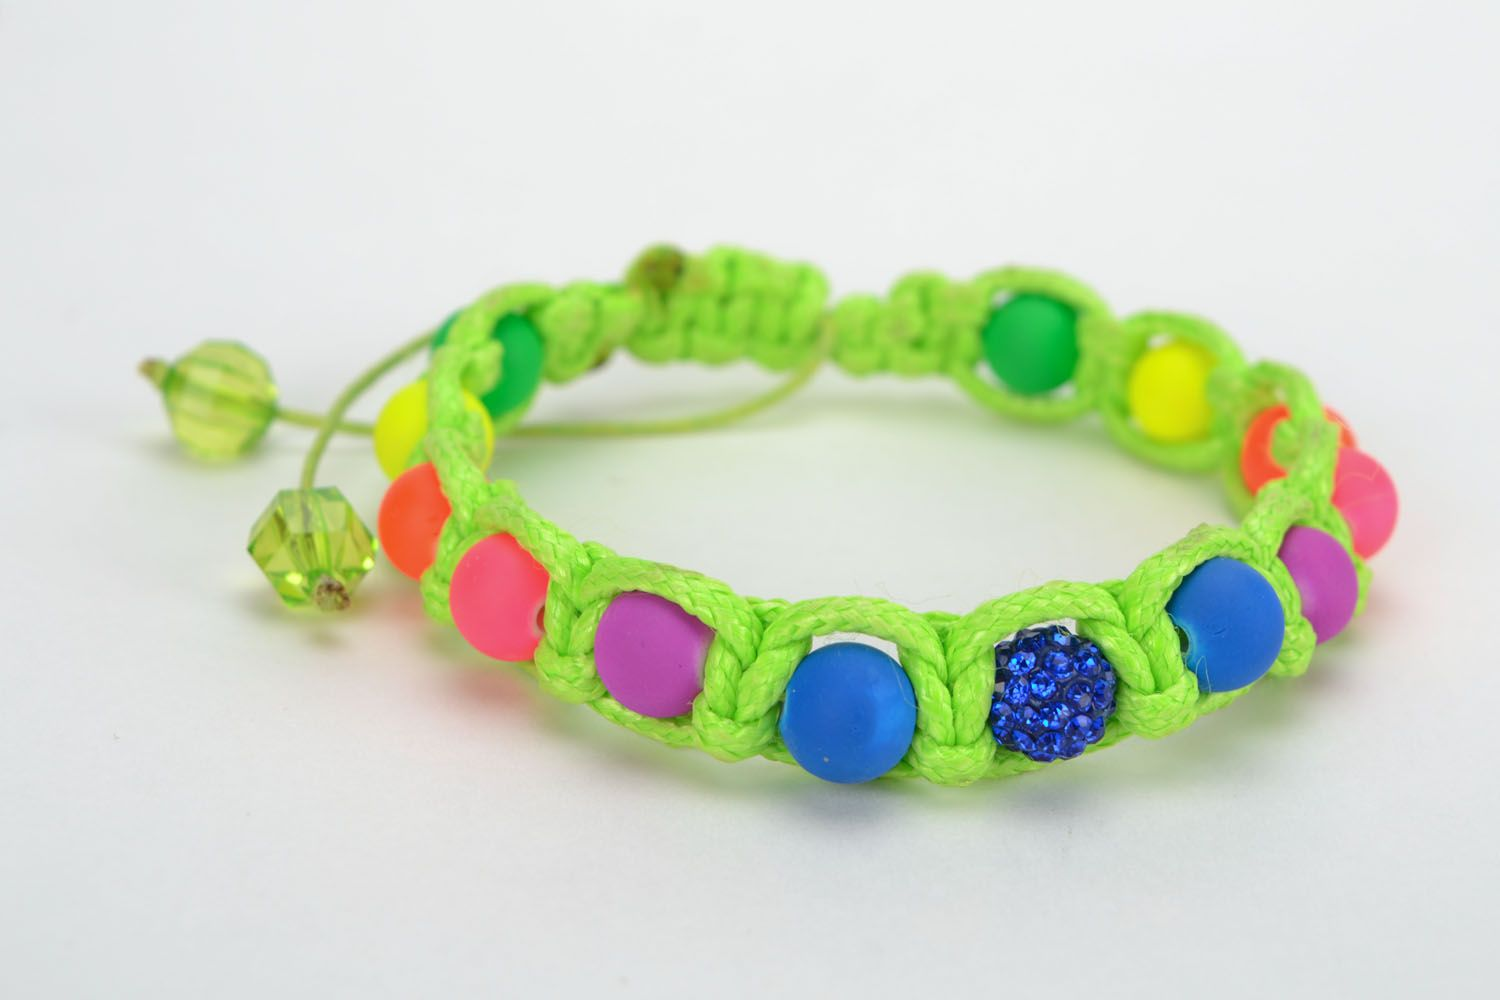 Bracelet woven of colorful beads photo 4